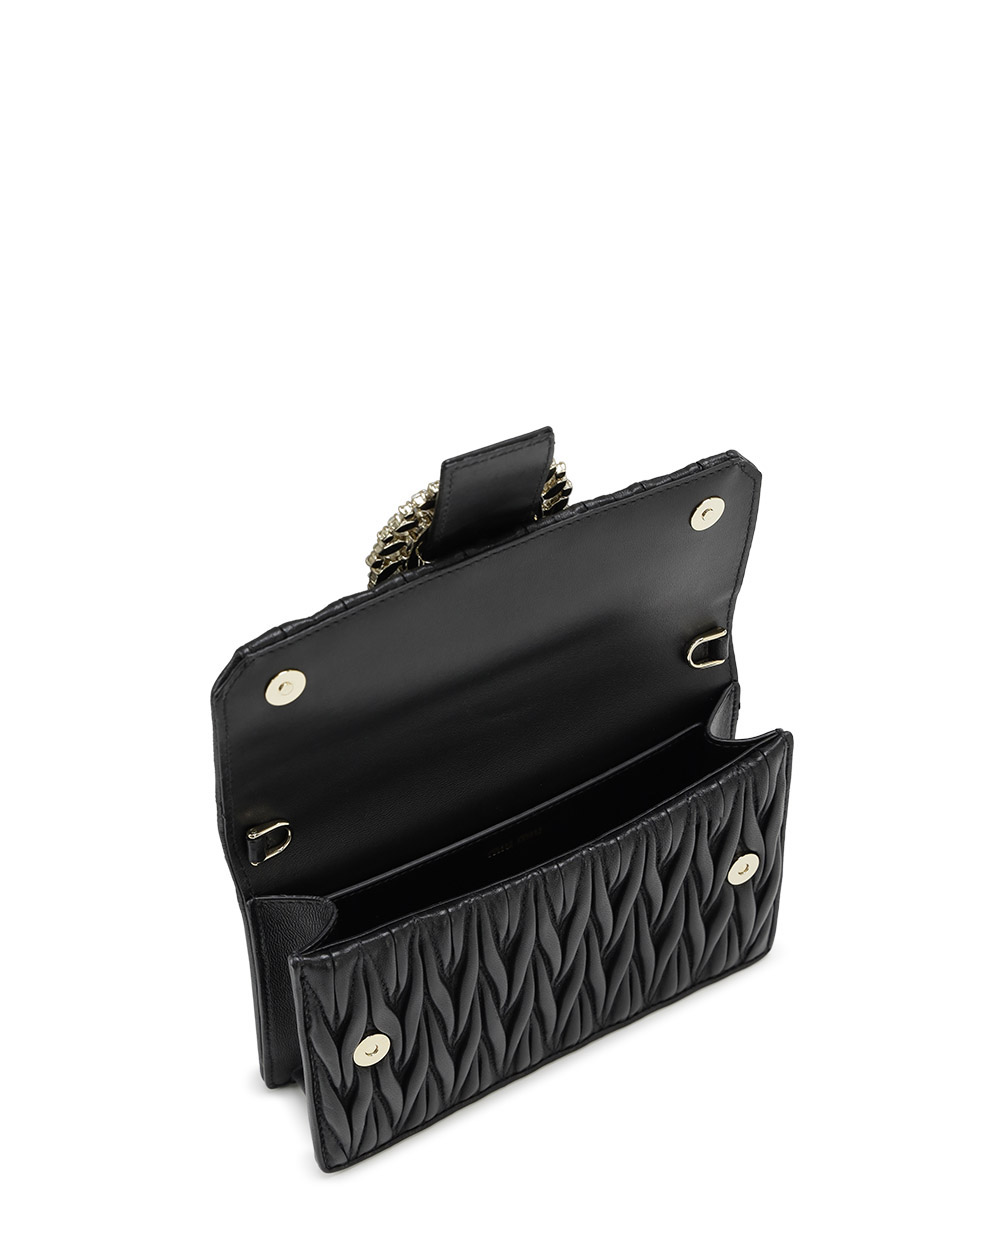 MATELASSÉ NAPPA Leather Shoulder Bag 2